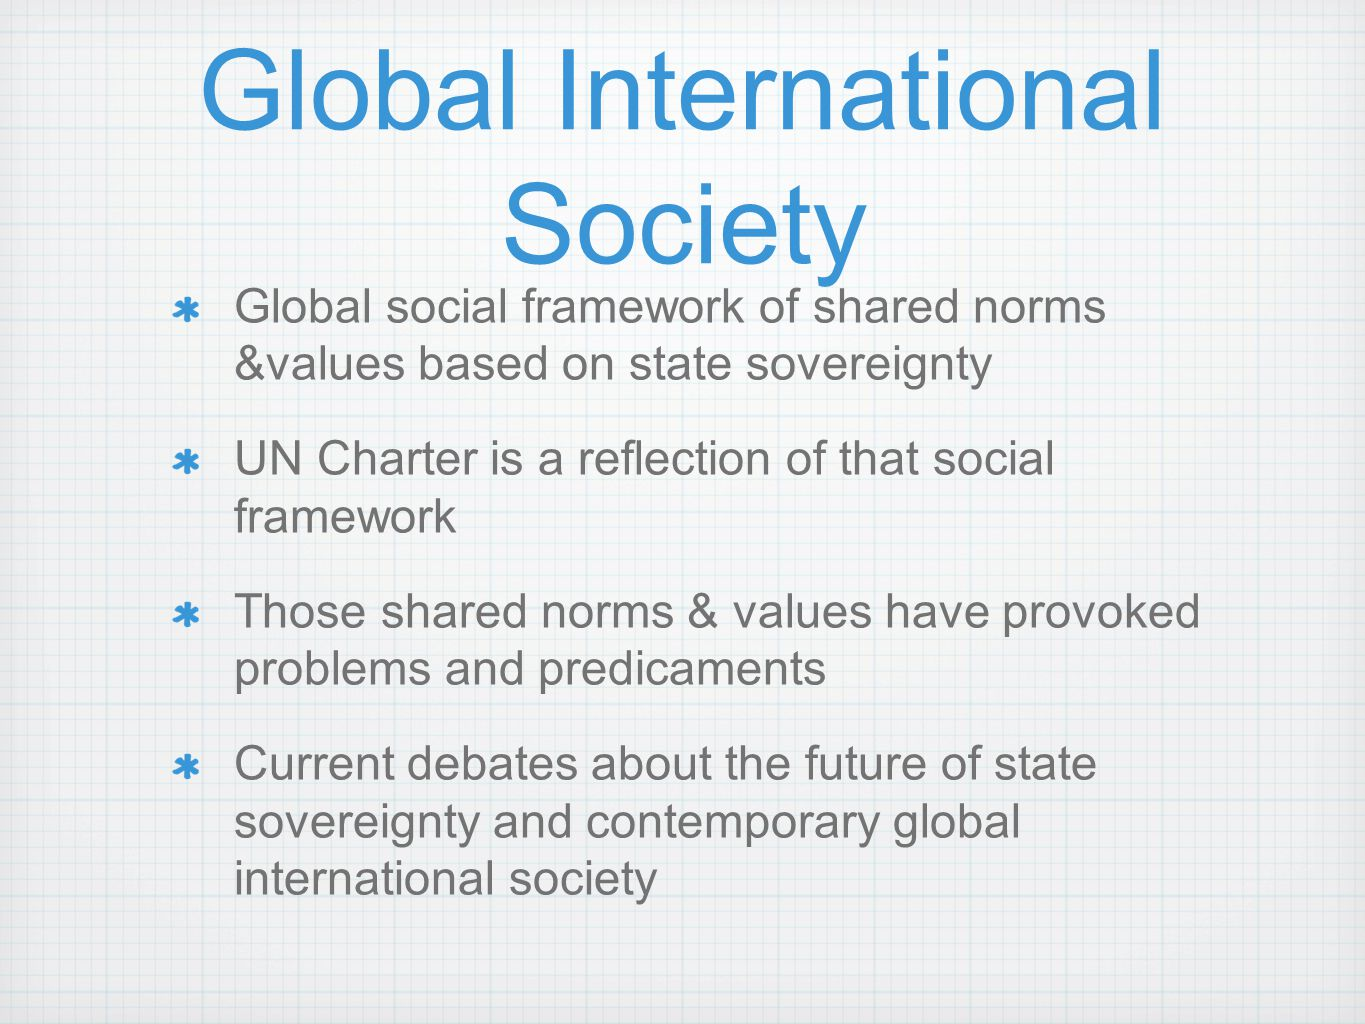 Global International Society Global social framework of shared norms &values based on state sovereignty UN Charter is a reflection of that social fram